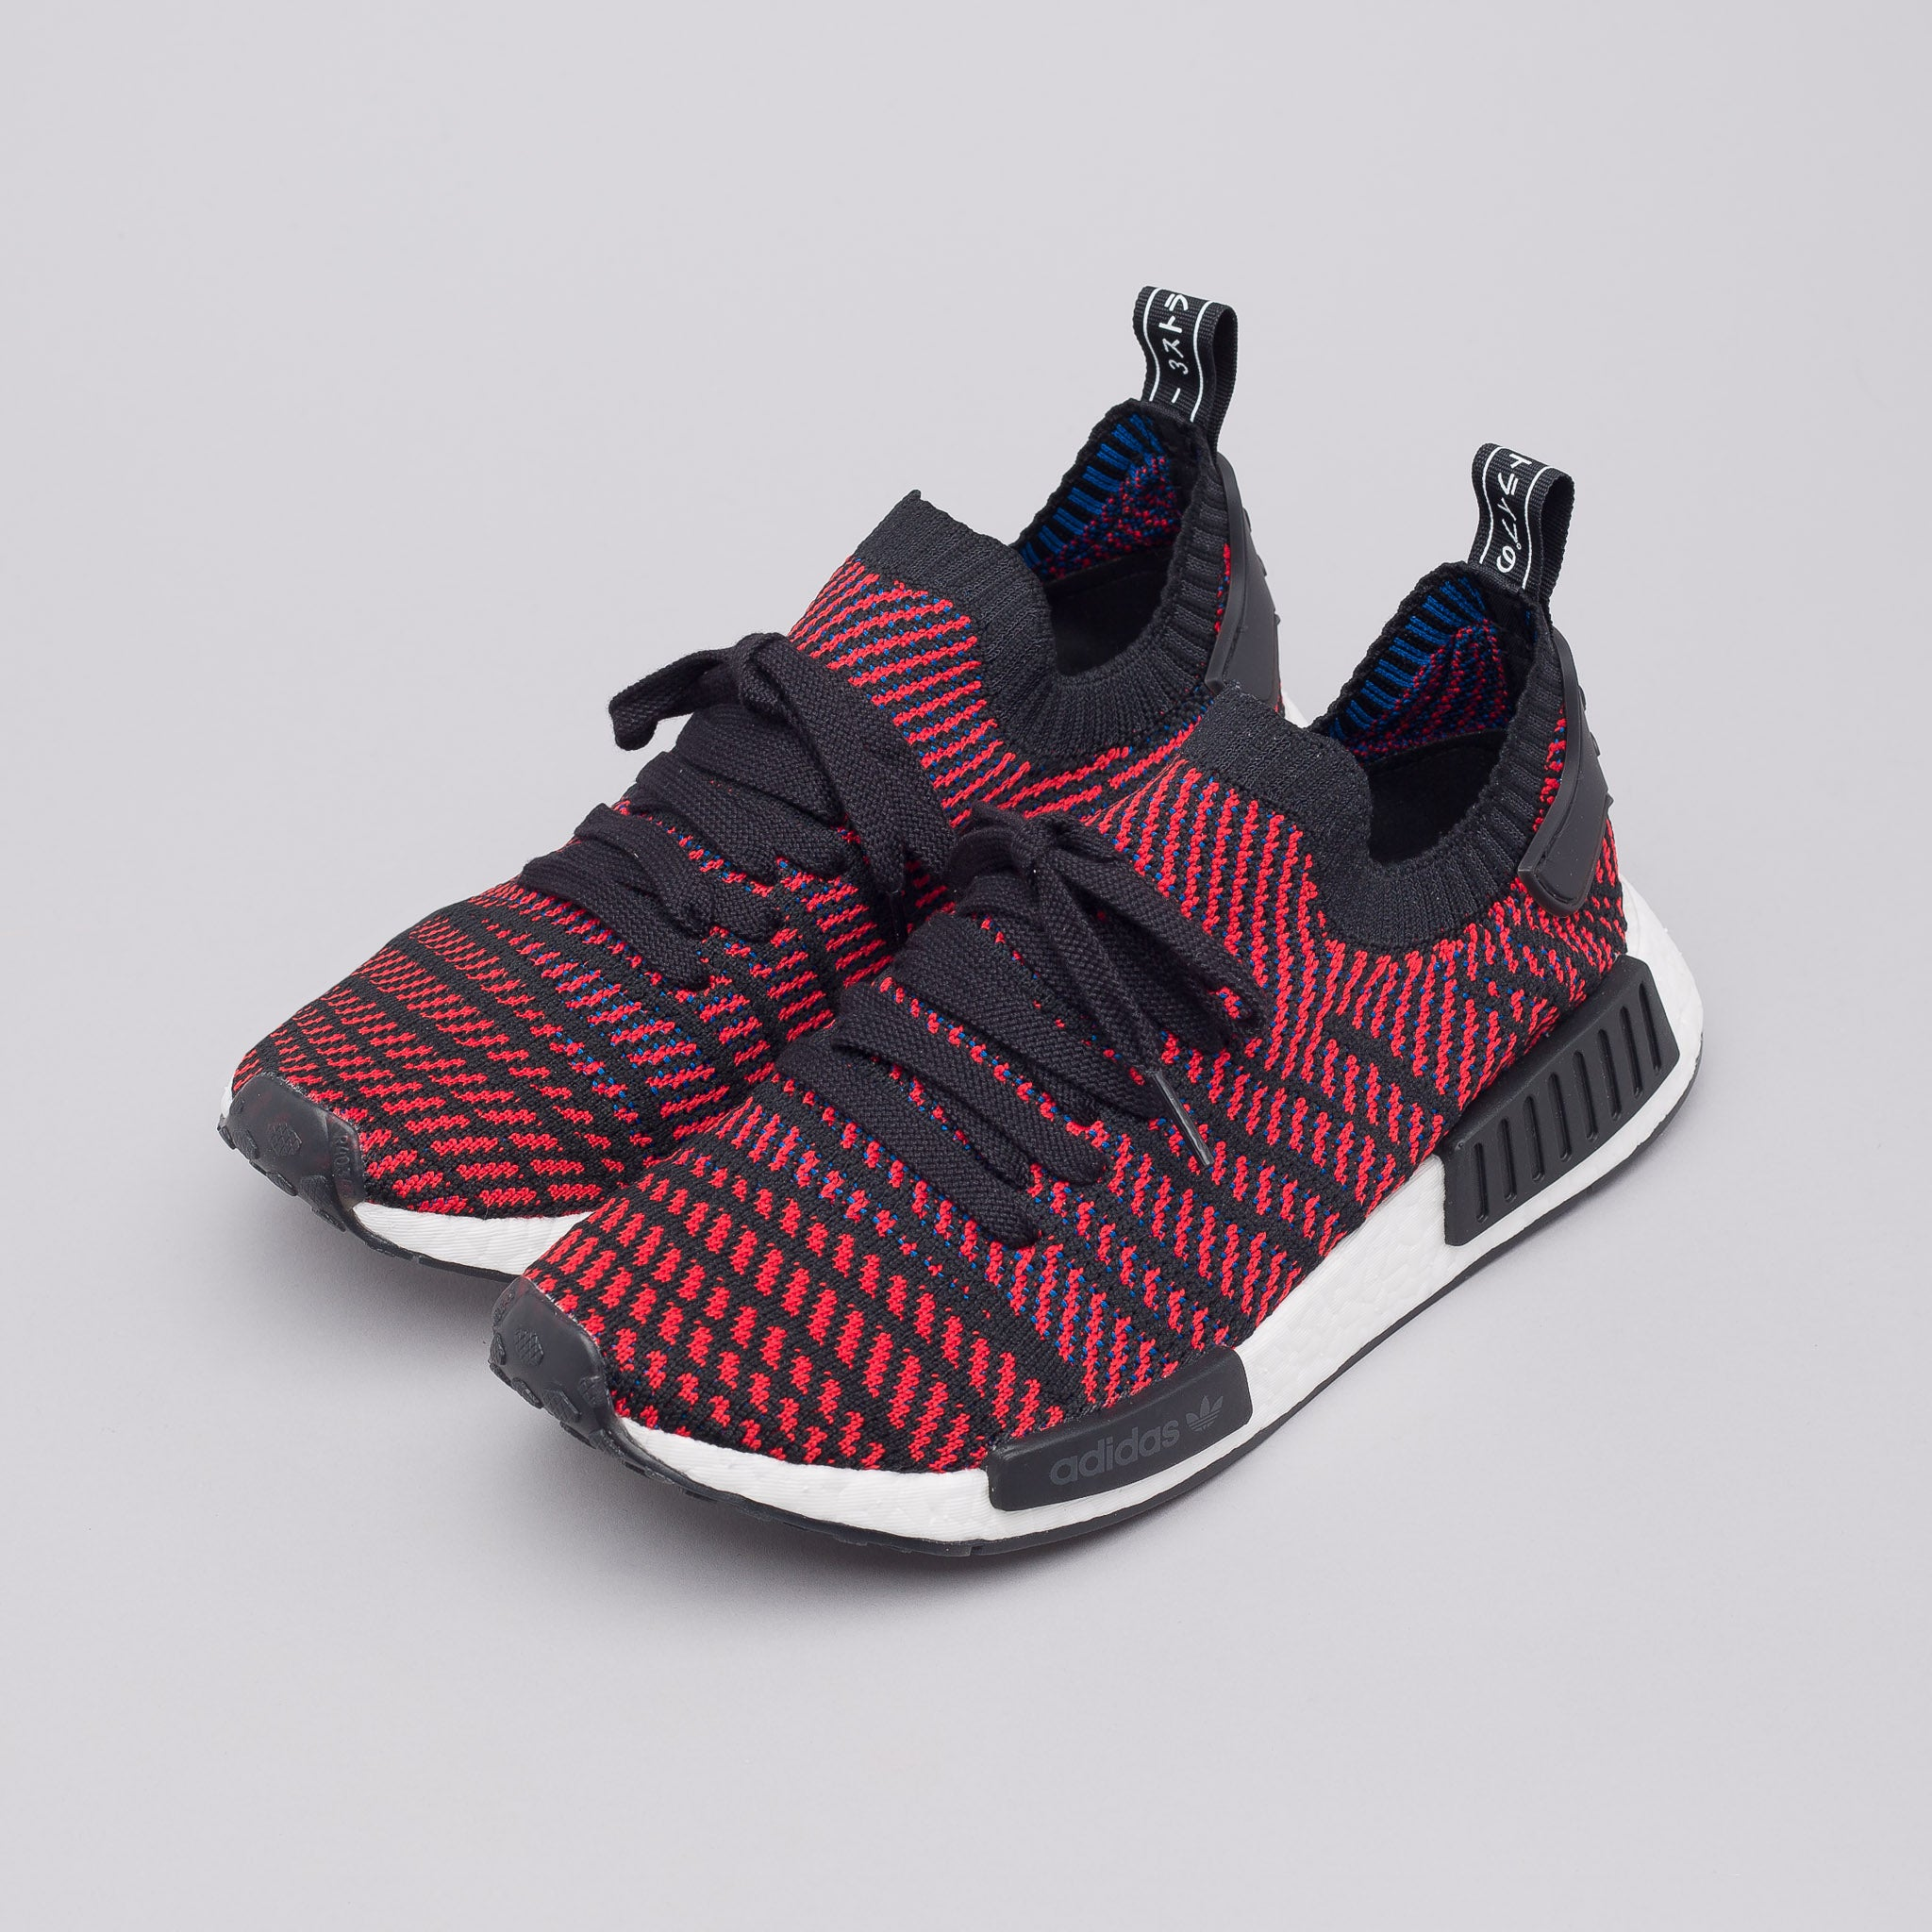 Cheap Adidas NMD R1 Shoes for Sale 2018